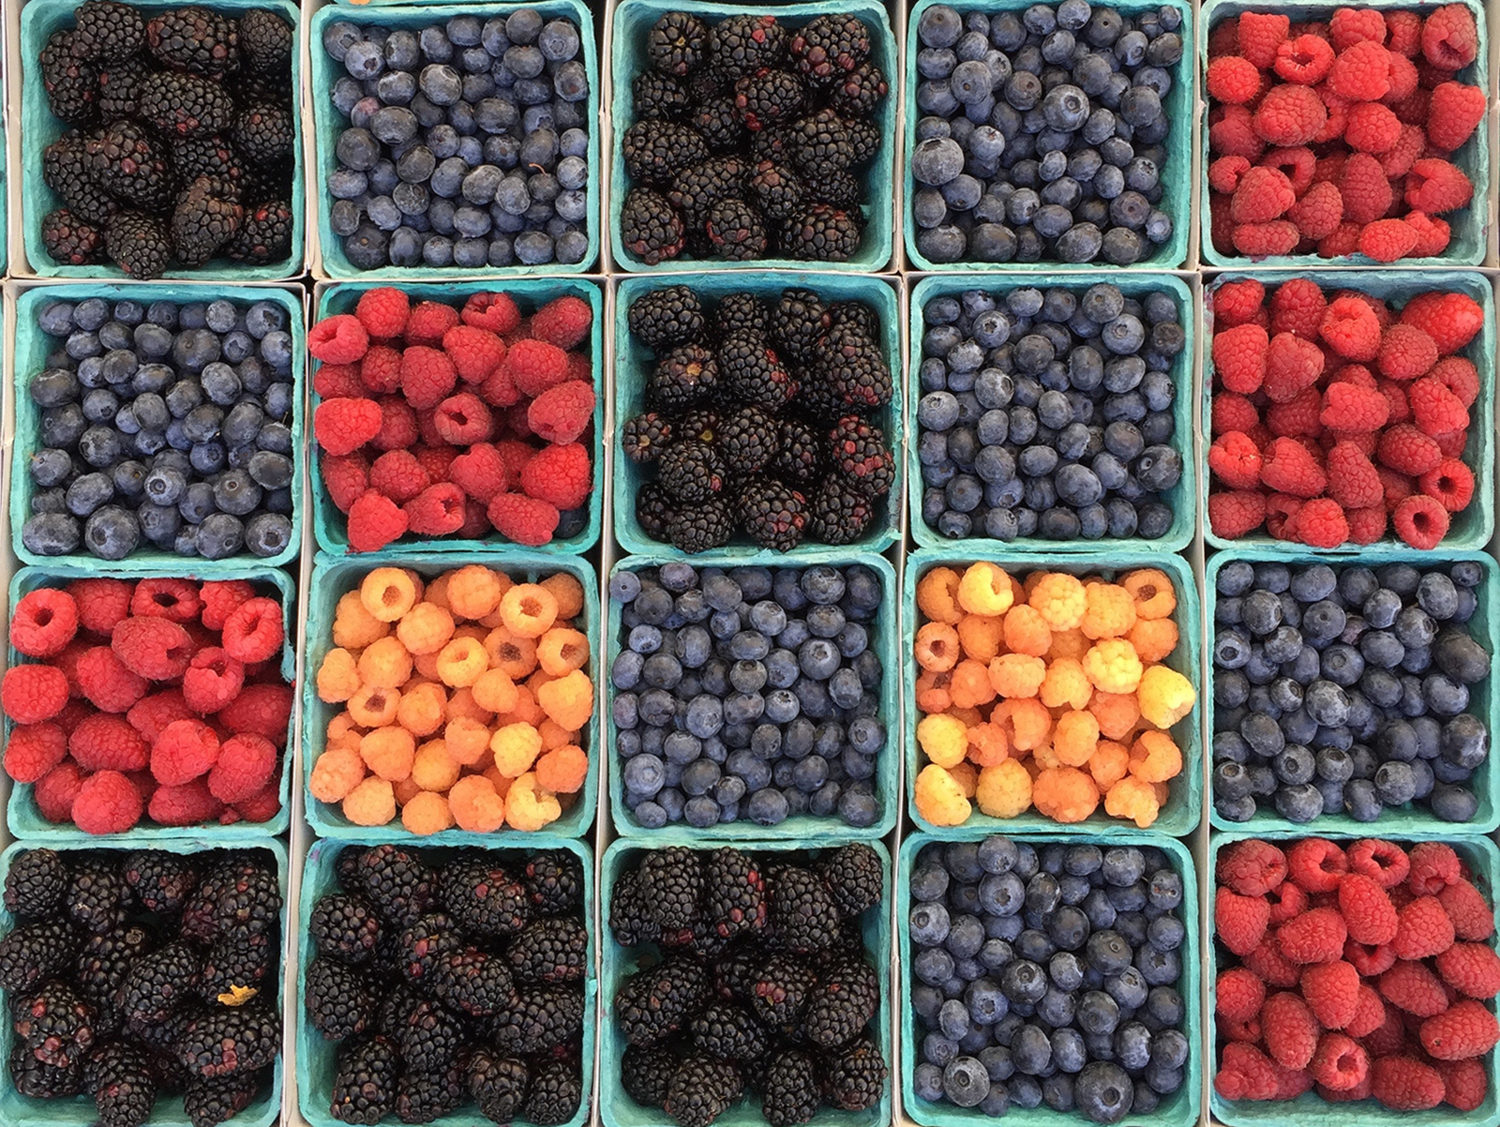 berry selection